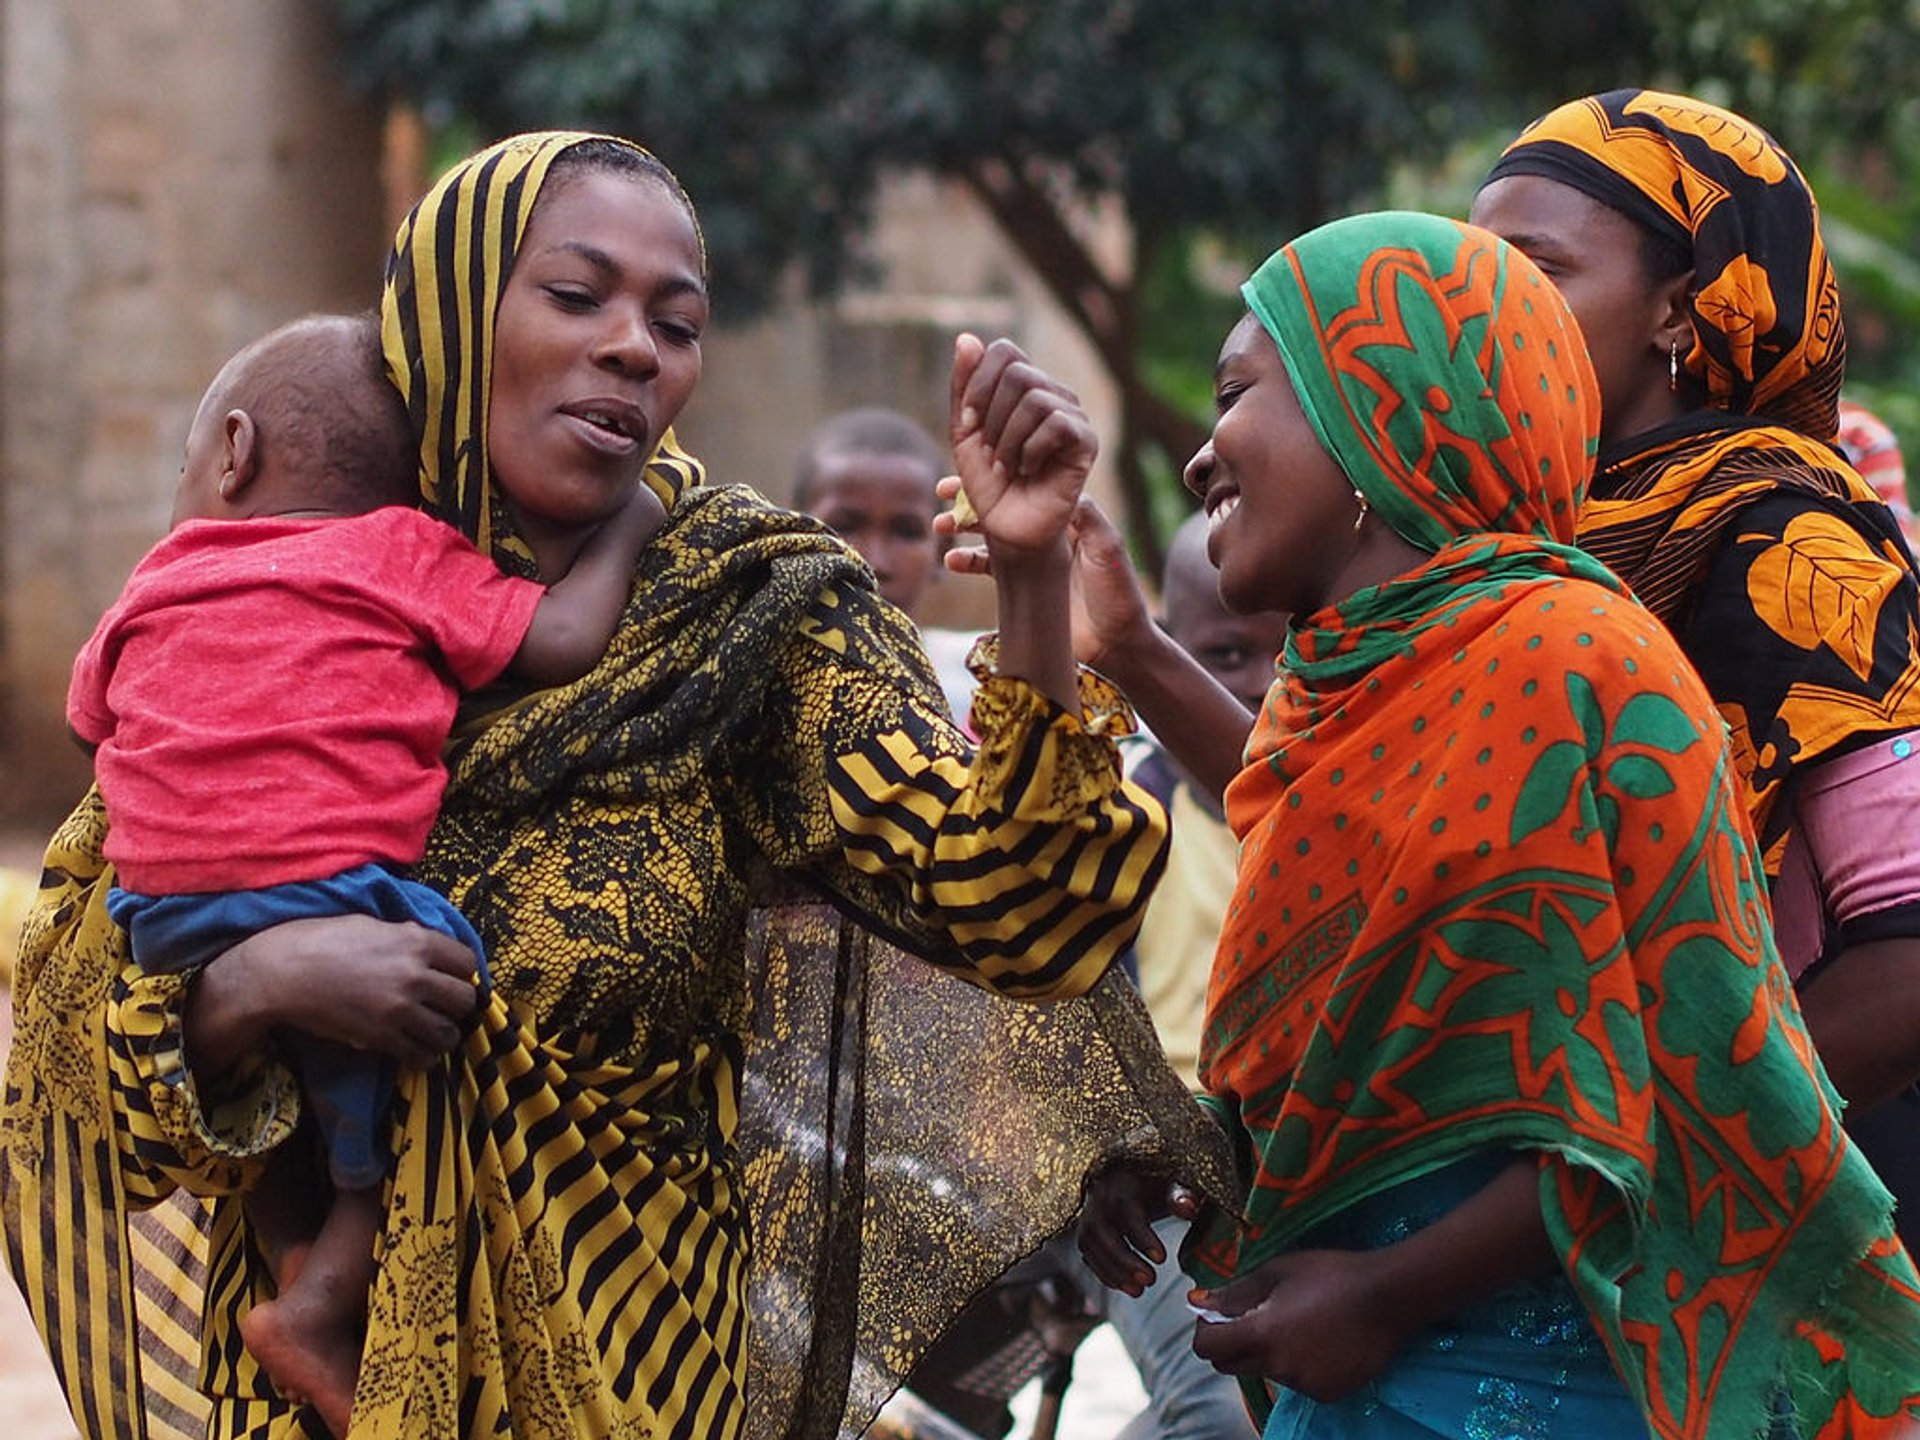 Women celebrating Eid al-Fitr in Kinyasini Village, Zanzibar, Tanzania 2020